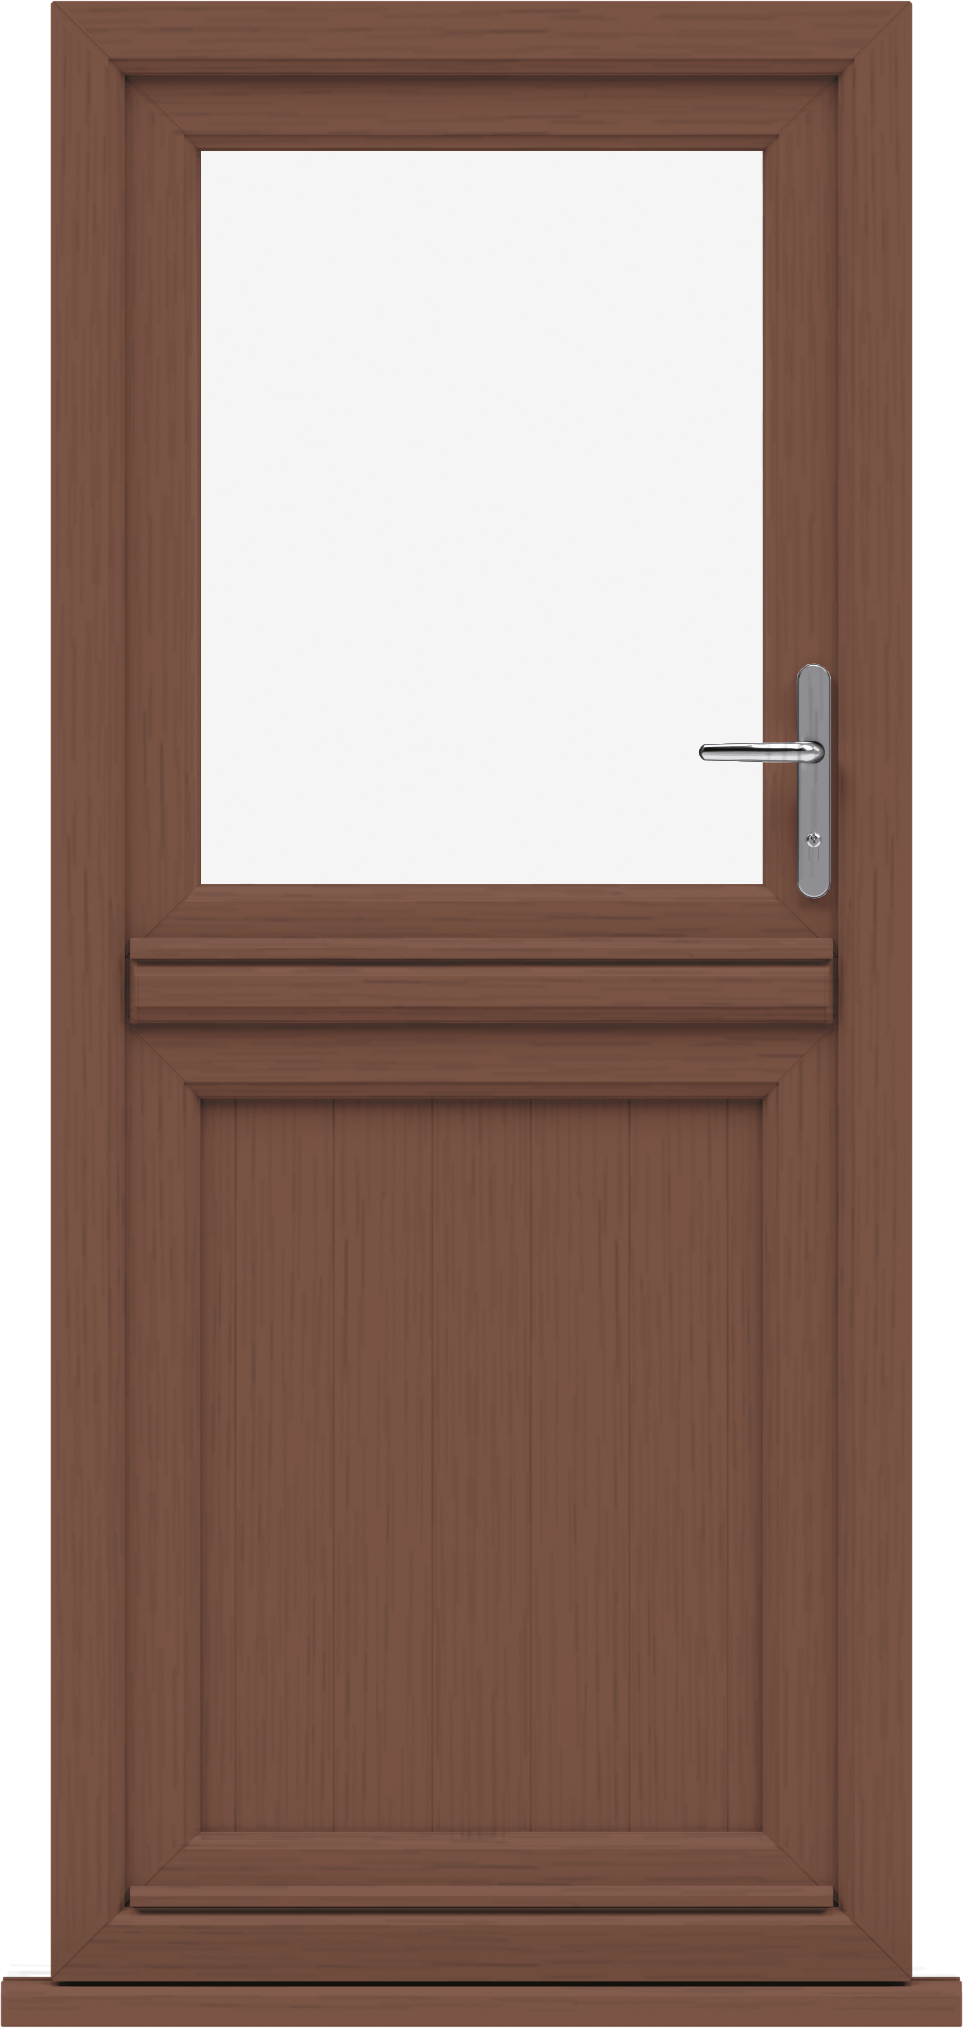 Southgate windows trade upvc stable doors bridgwater for Upvc windows and doors